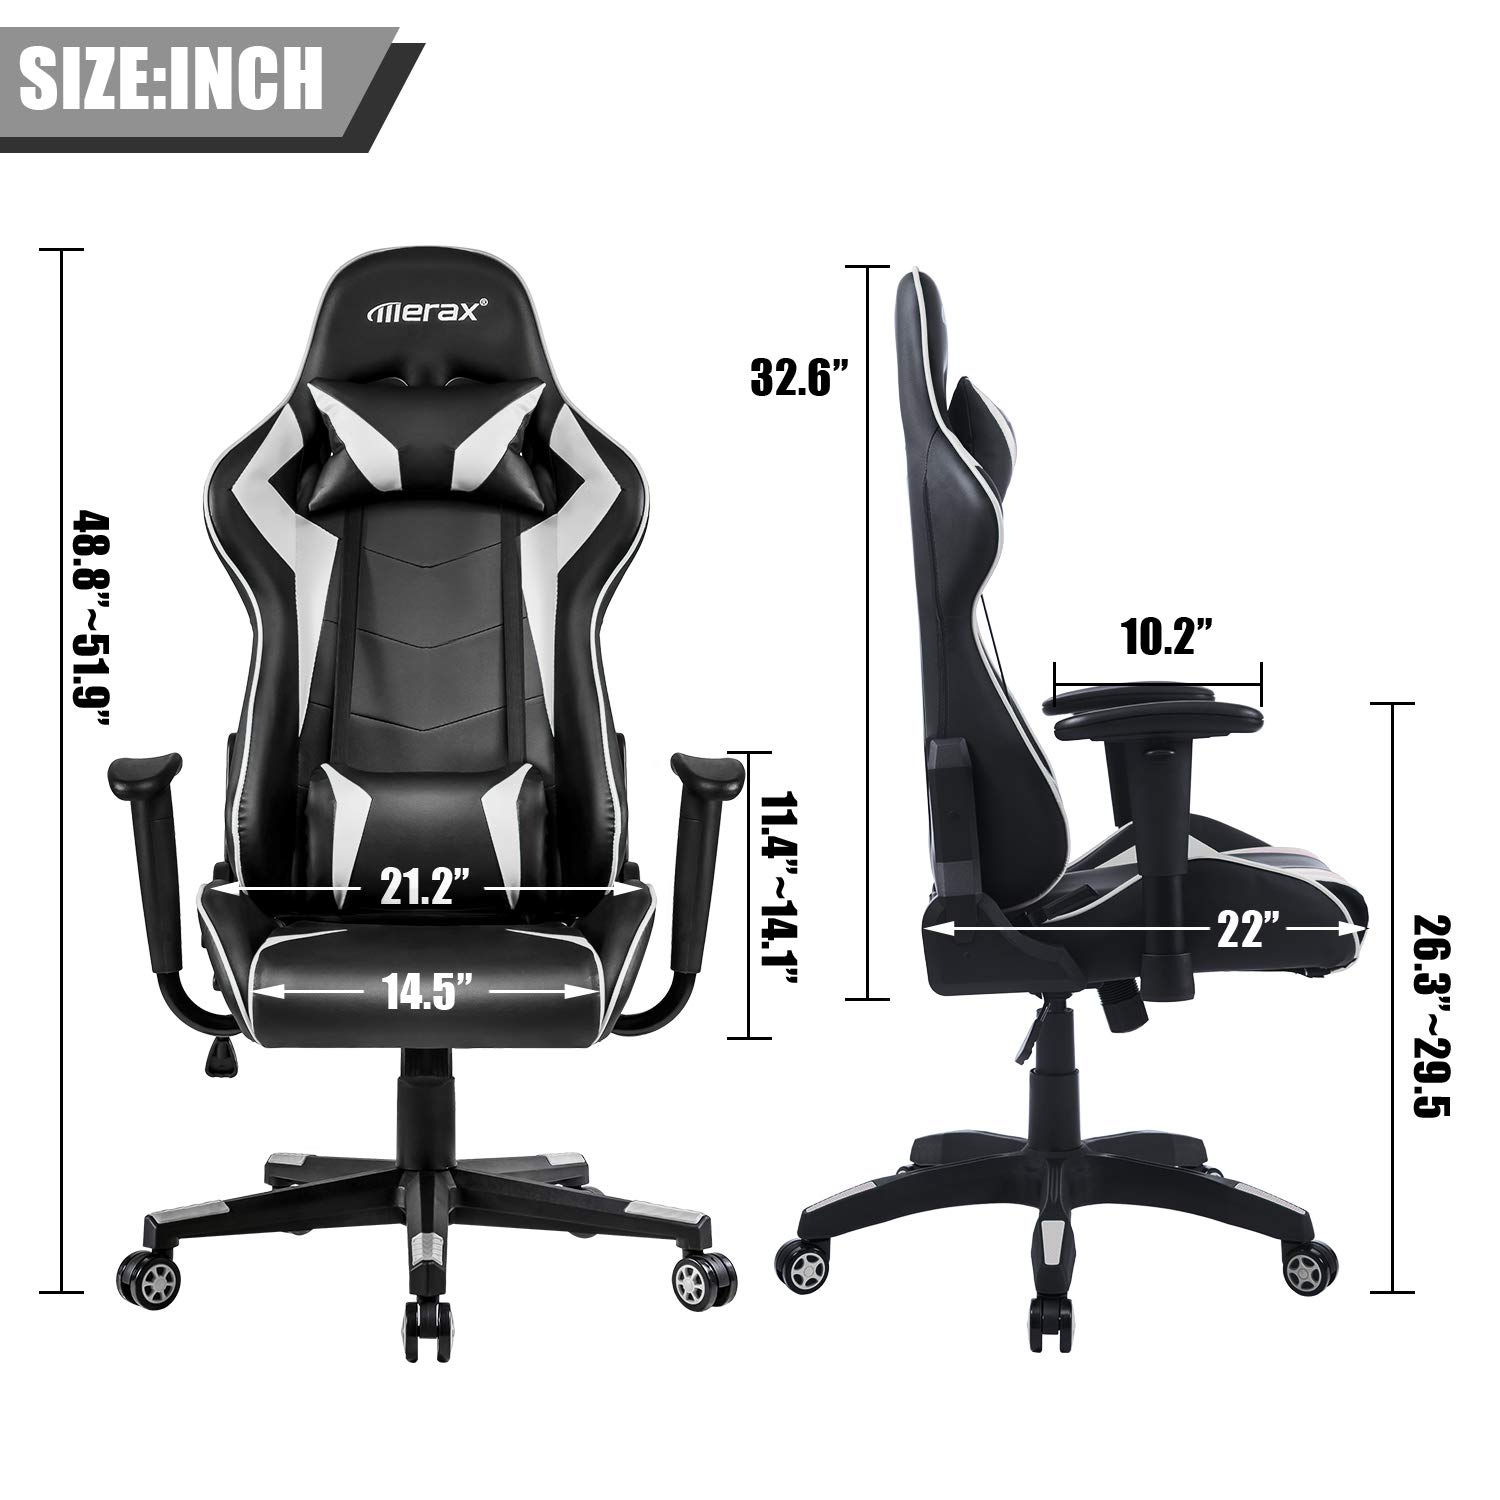 Merax Gaming Chair Computer Home Desk Chair Racing Comfy Office Chair Ergonomic High Back Reclining Executive Chair Comfortable for Gamers Teens/Adult/Kids (Black&Cotton White: Max 245lbs) by Merax